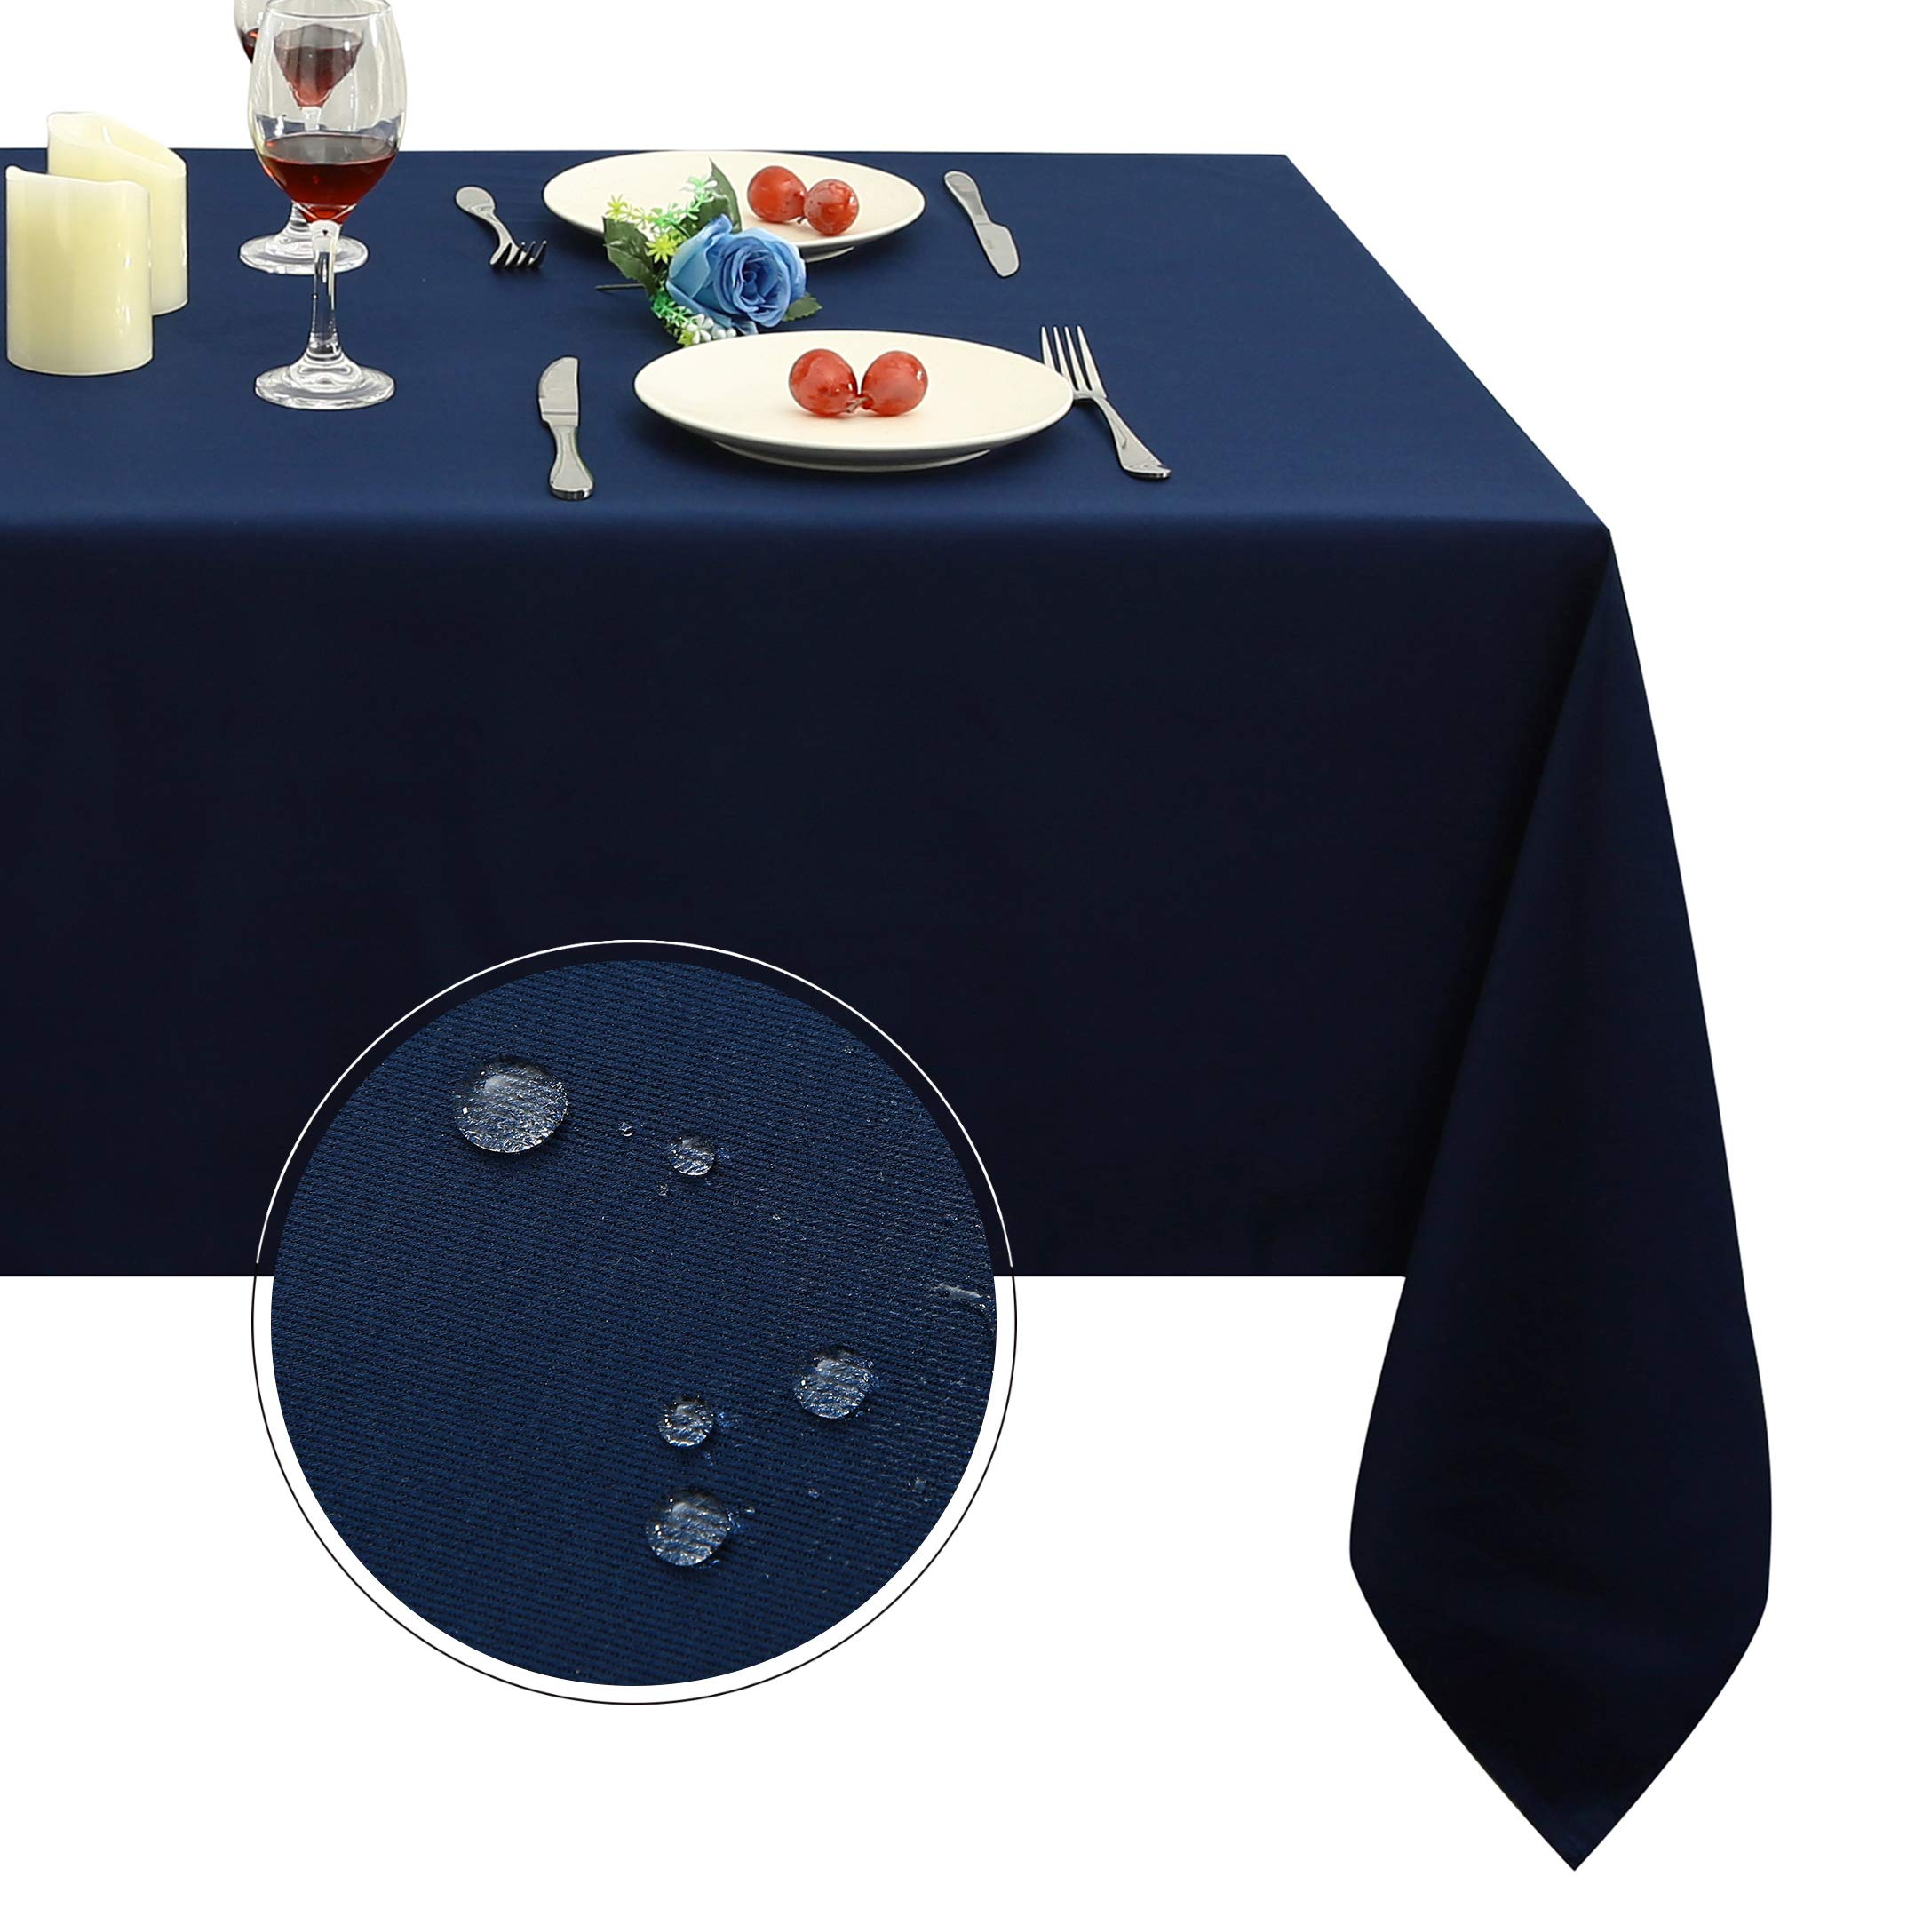 Obstal Rectangle Table Cloth, Oil-Proof Spill-Proof and Water Resistance Microfiber Tablecloth, Decorative Fabric Table Cover for Outdoor and Indoor Use (Navy Blue, 60 x 84 Inch) by Obstal (Image #1)